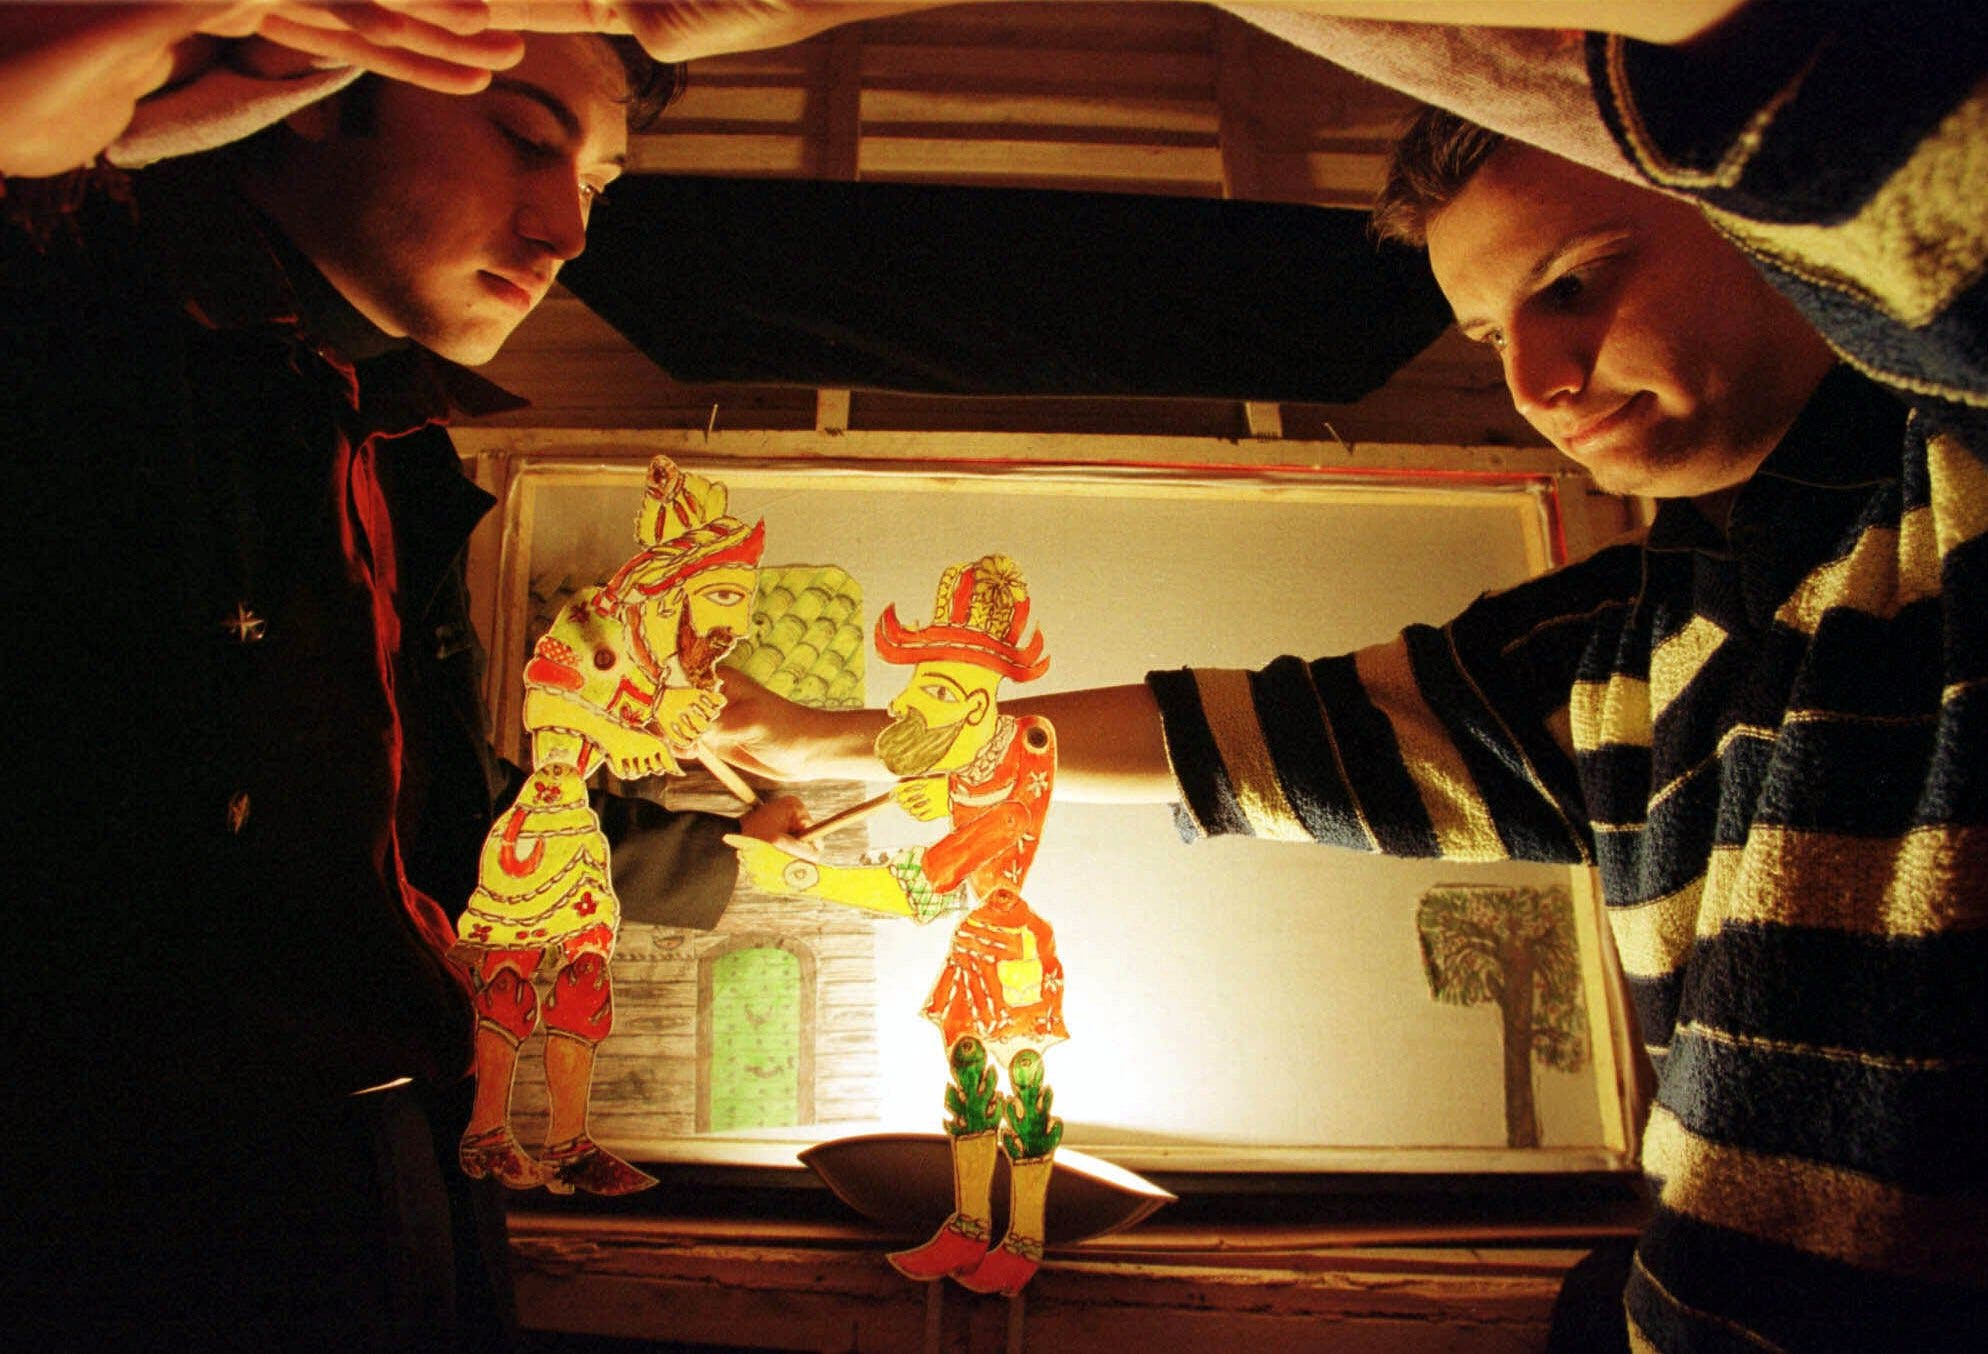 Young Karagoz apprentices show the shadow puppets in Istanbul on January 5, 2000. (AP)